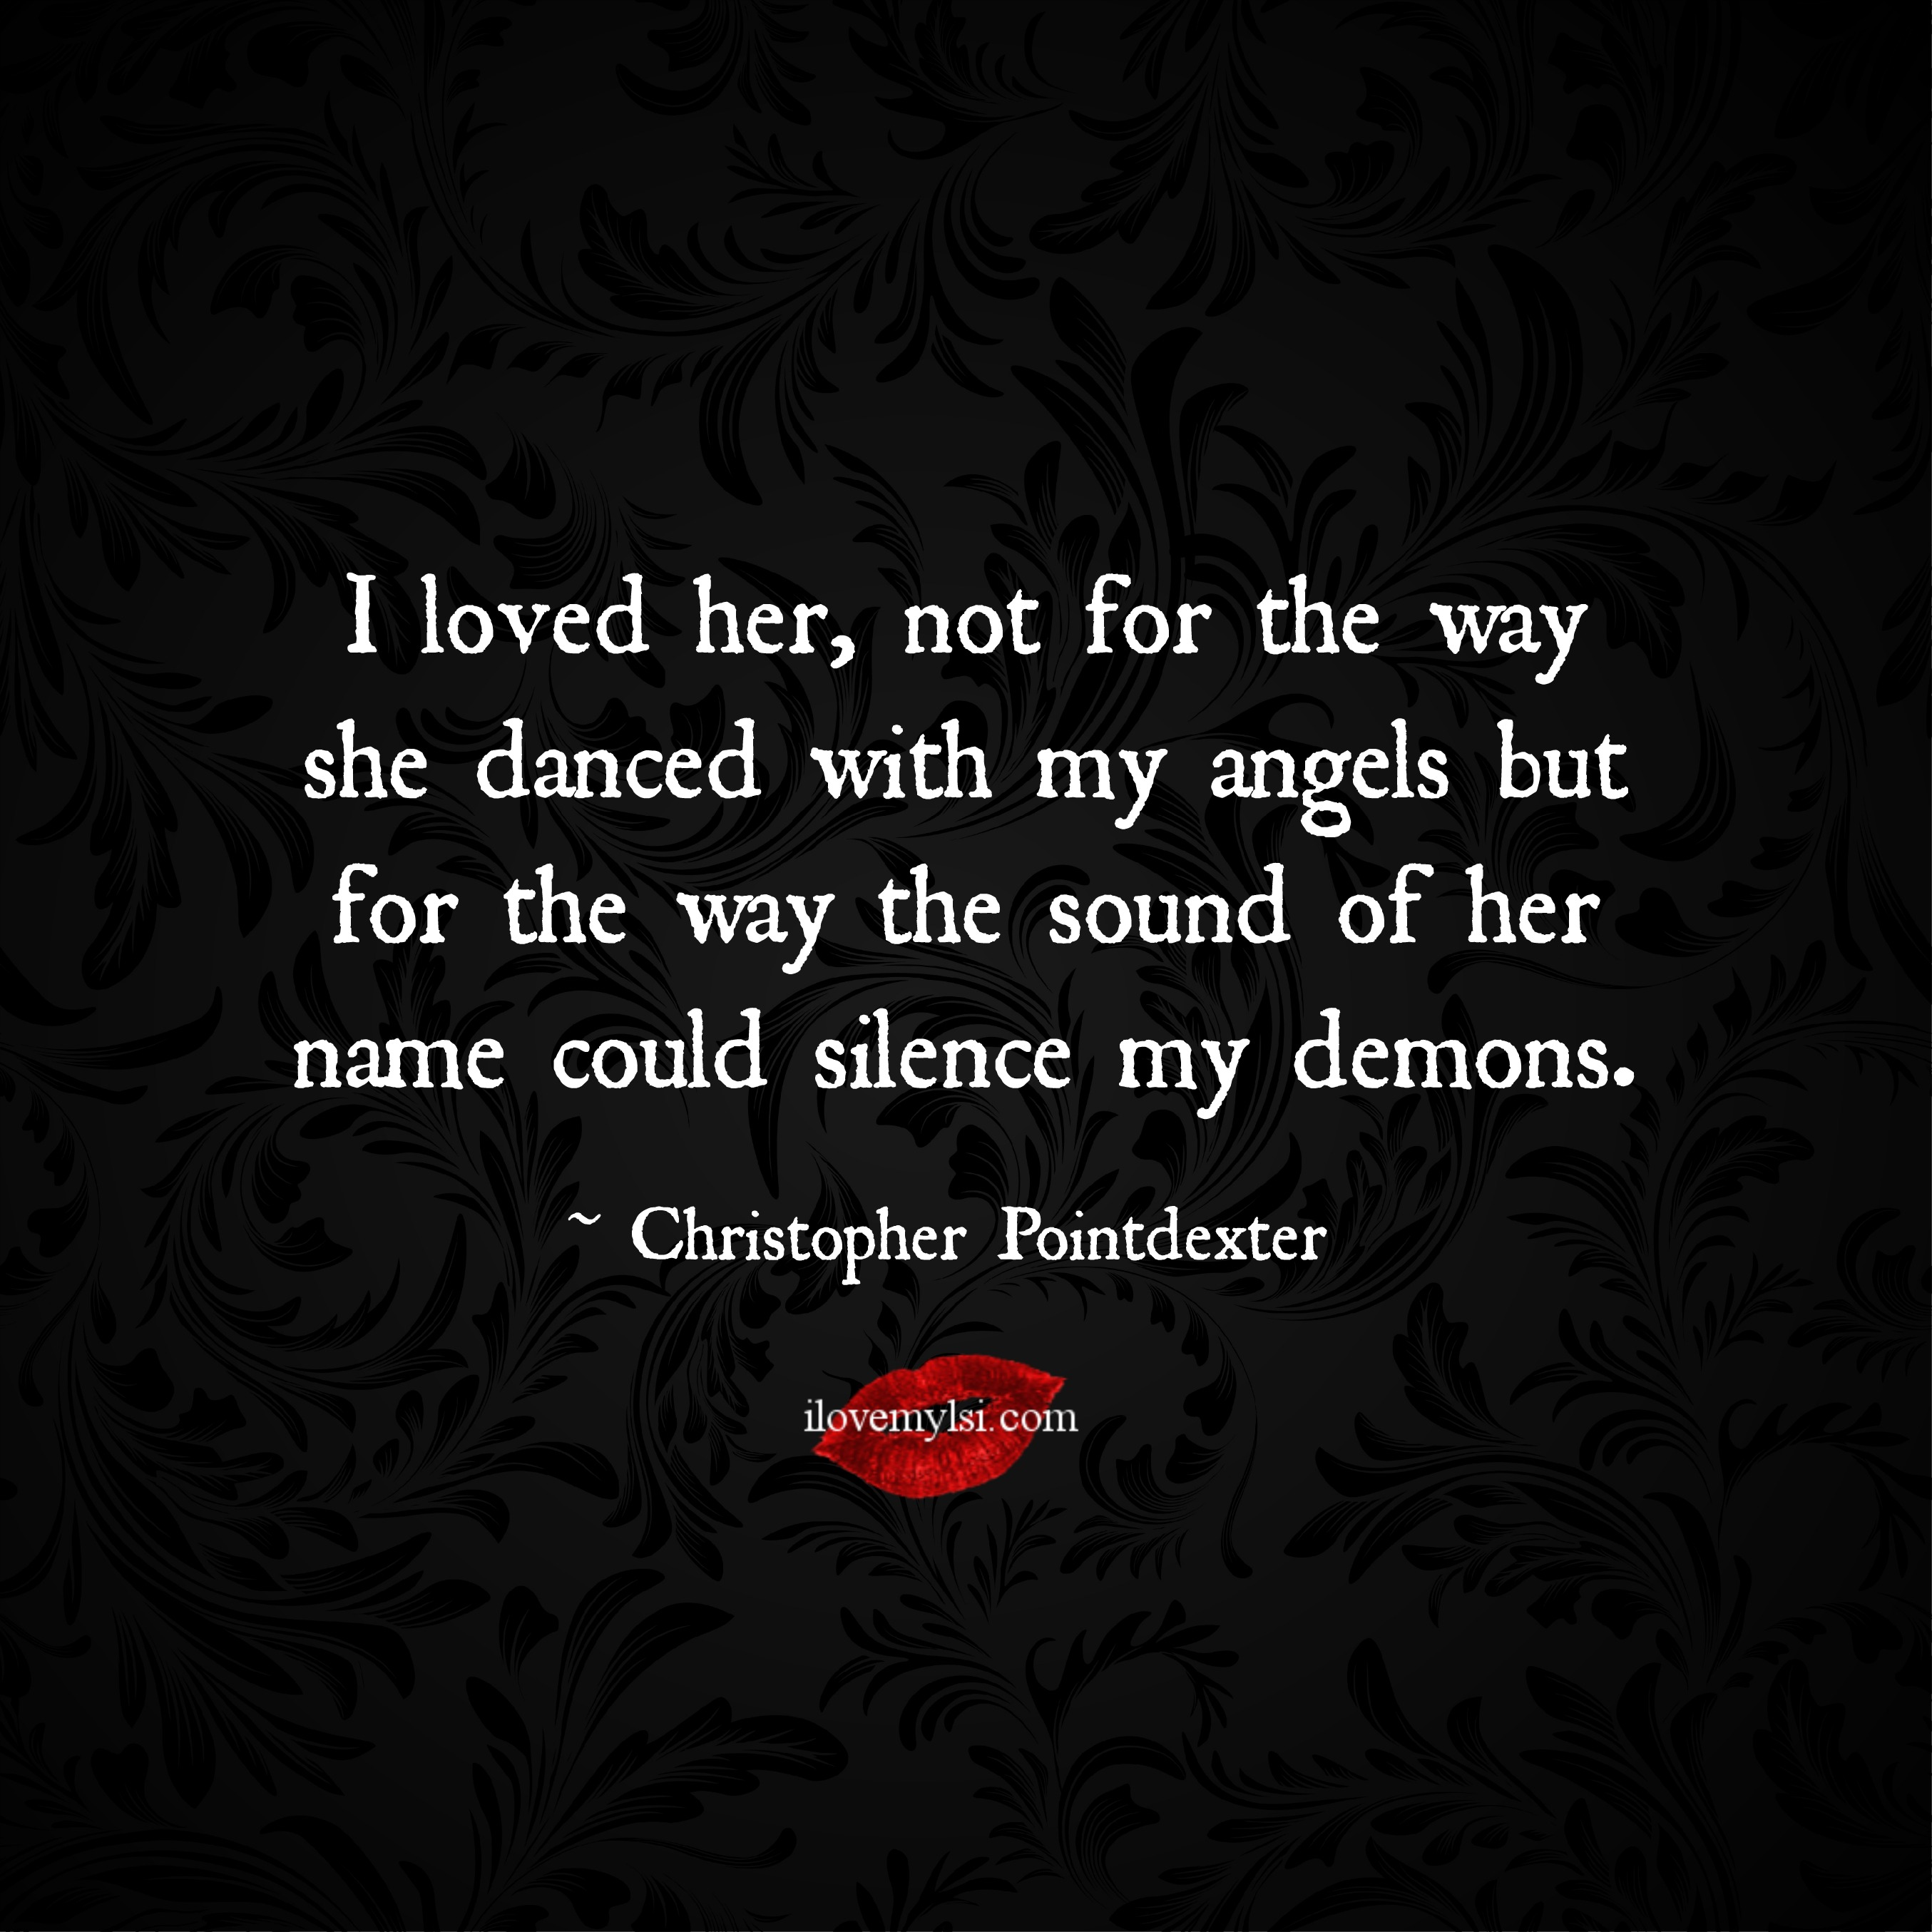 Romantic Love Quotes For Her The 25 Most Romantic Love Quotes You Will Ever Read Page 7 Of